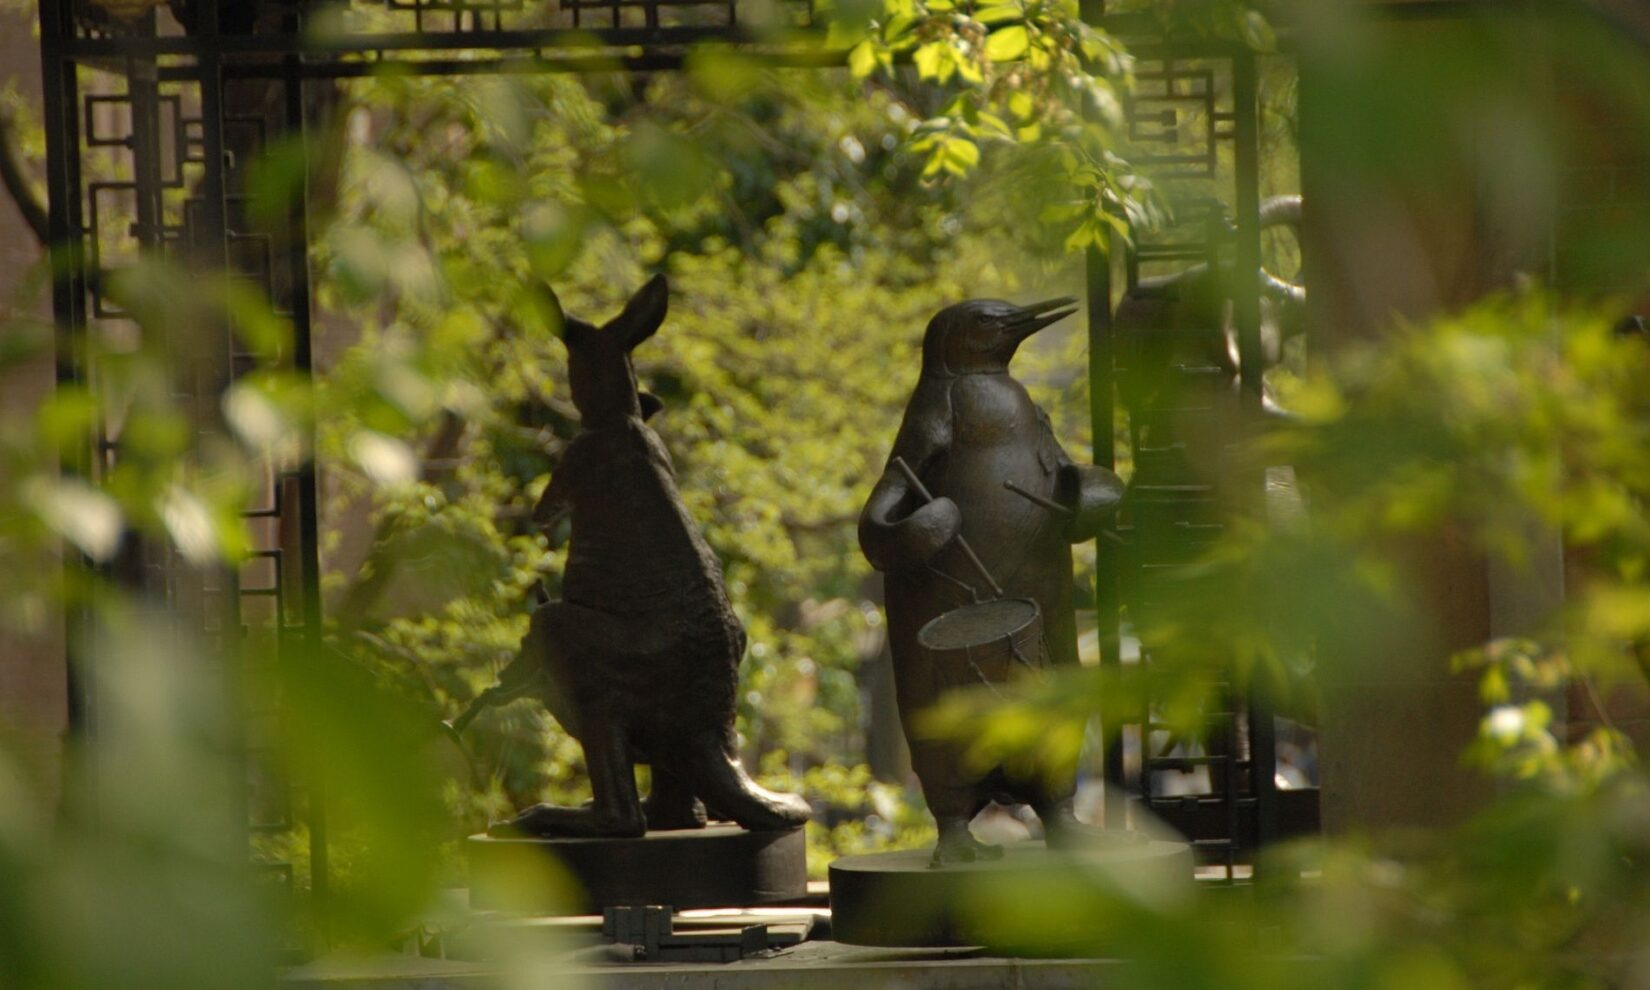 Detail of the hare and penguin figures of the Clock.